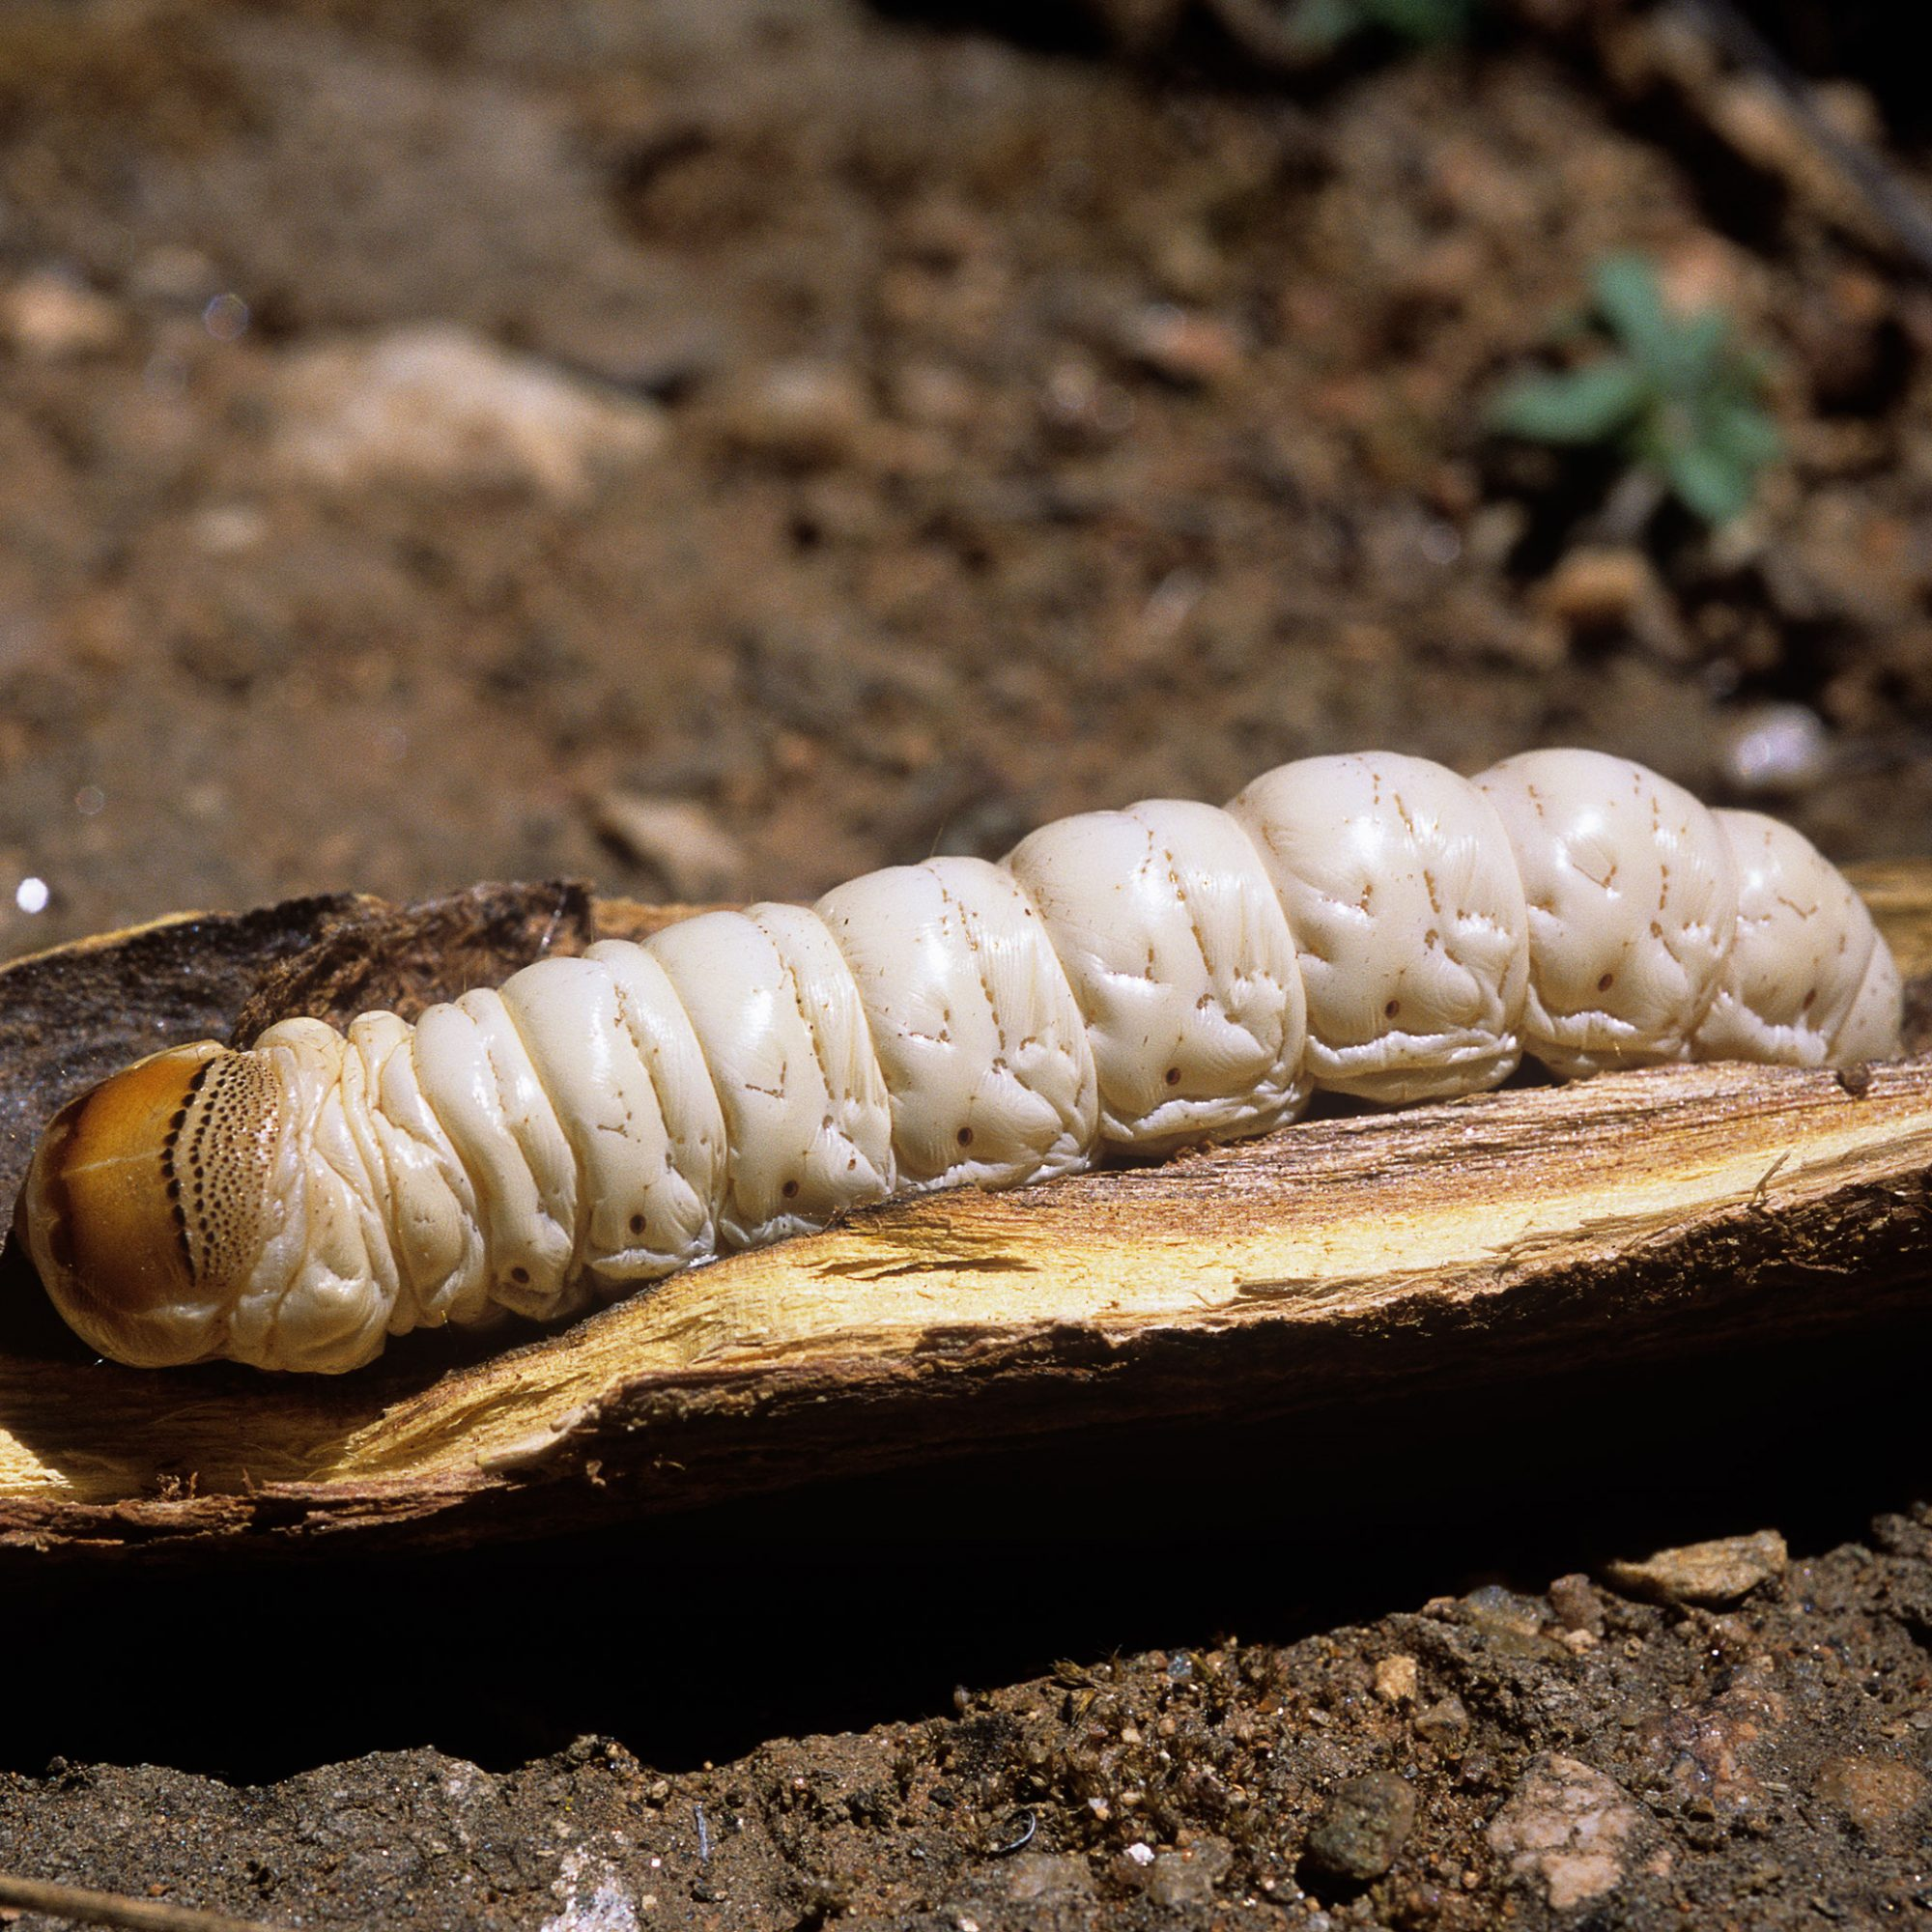 witchetty-grub-fwx